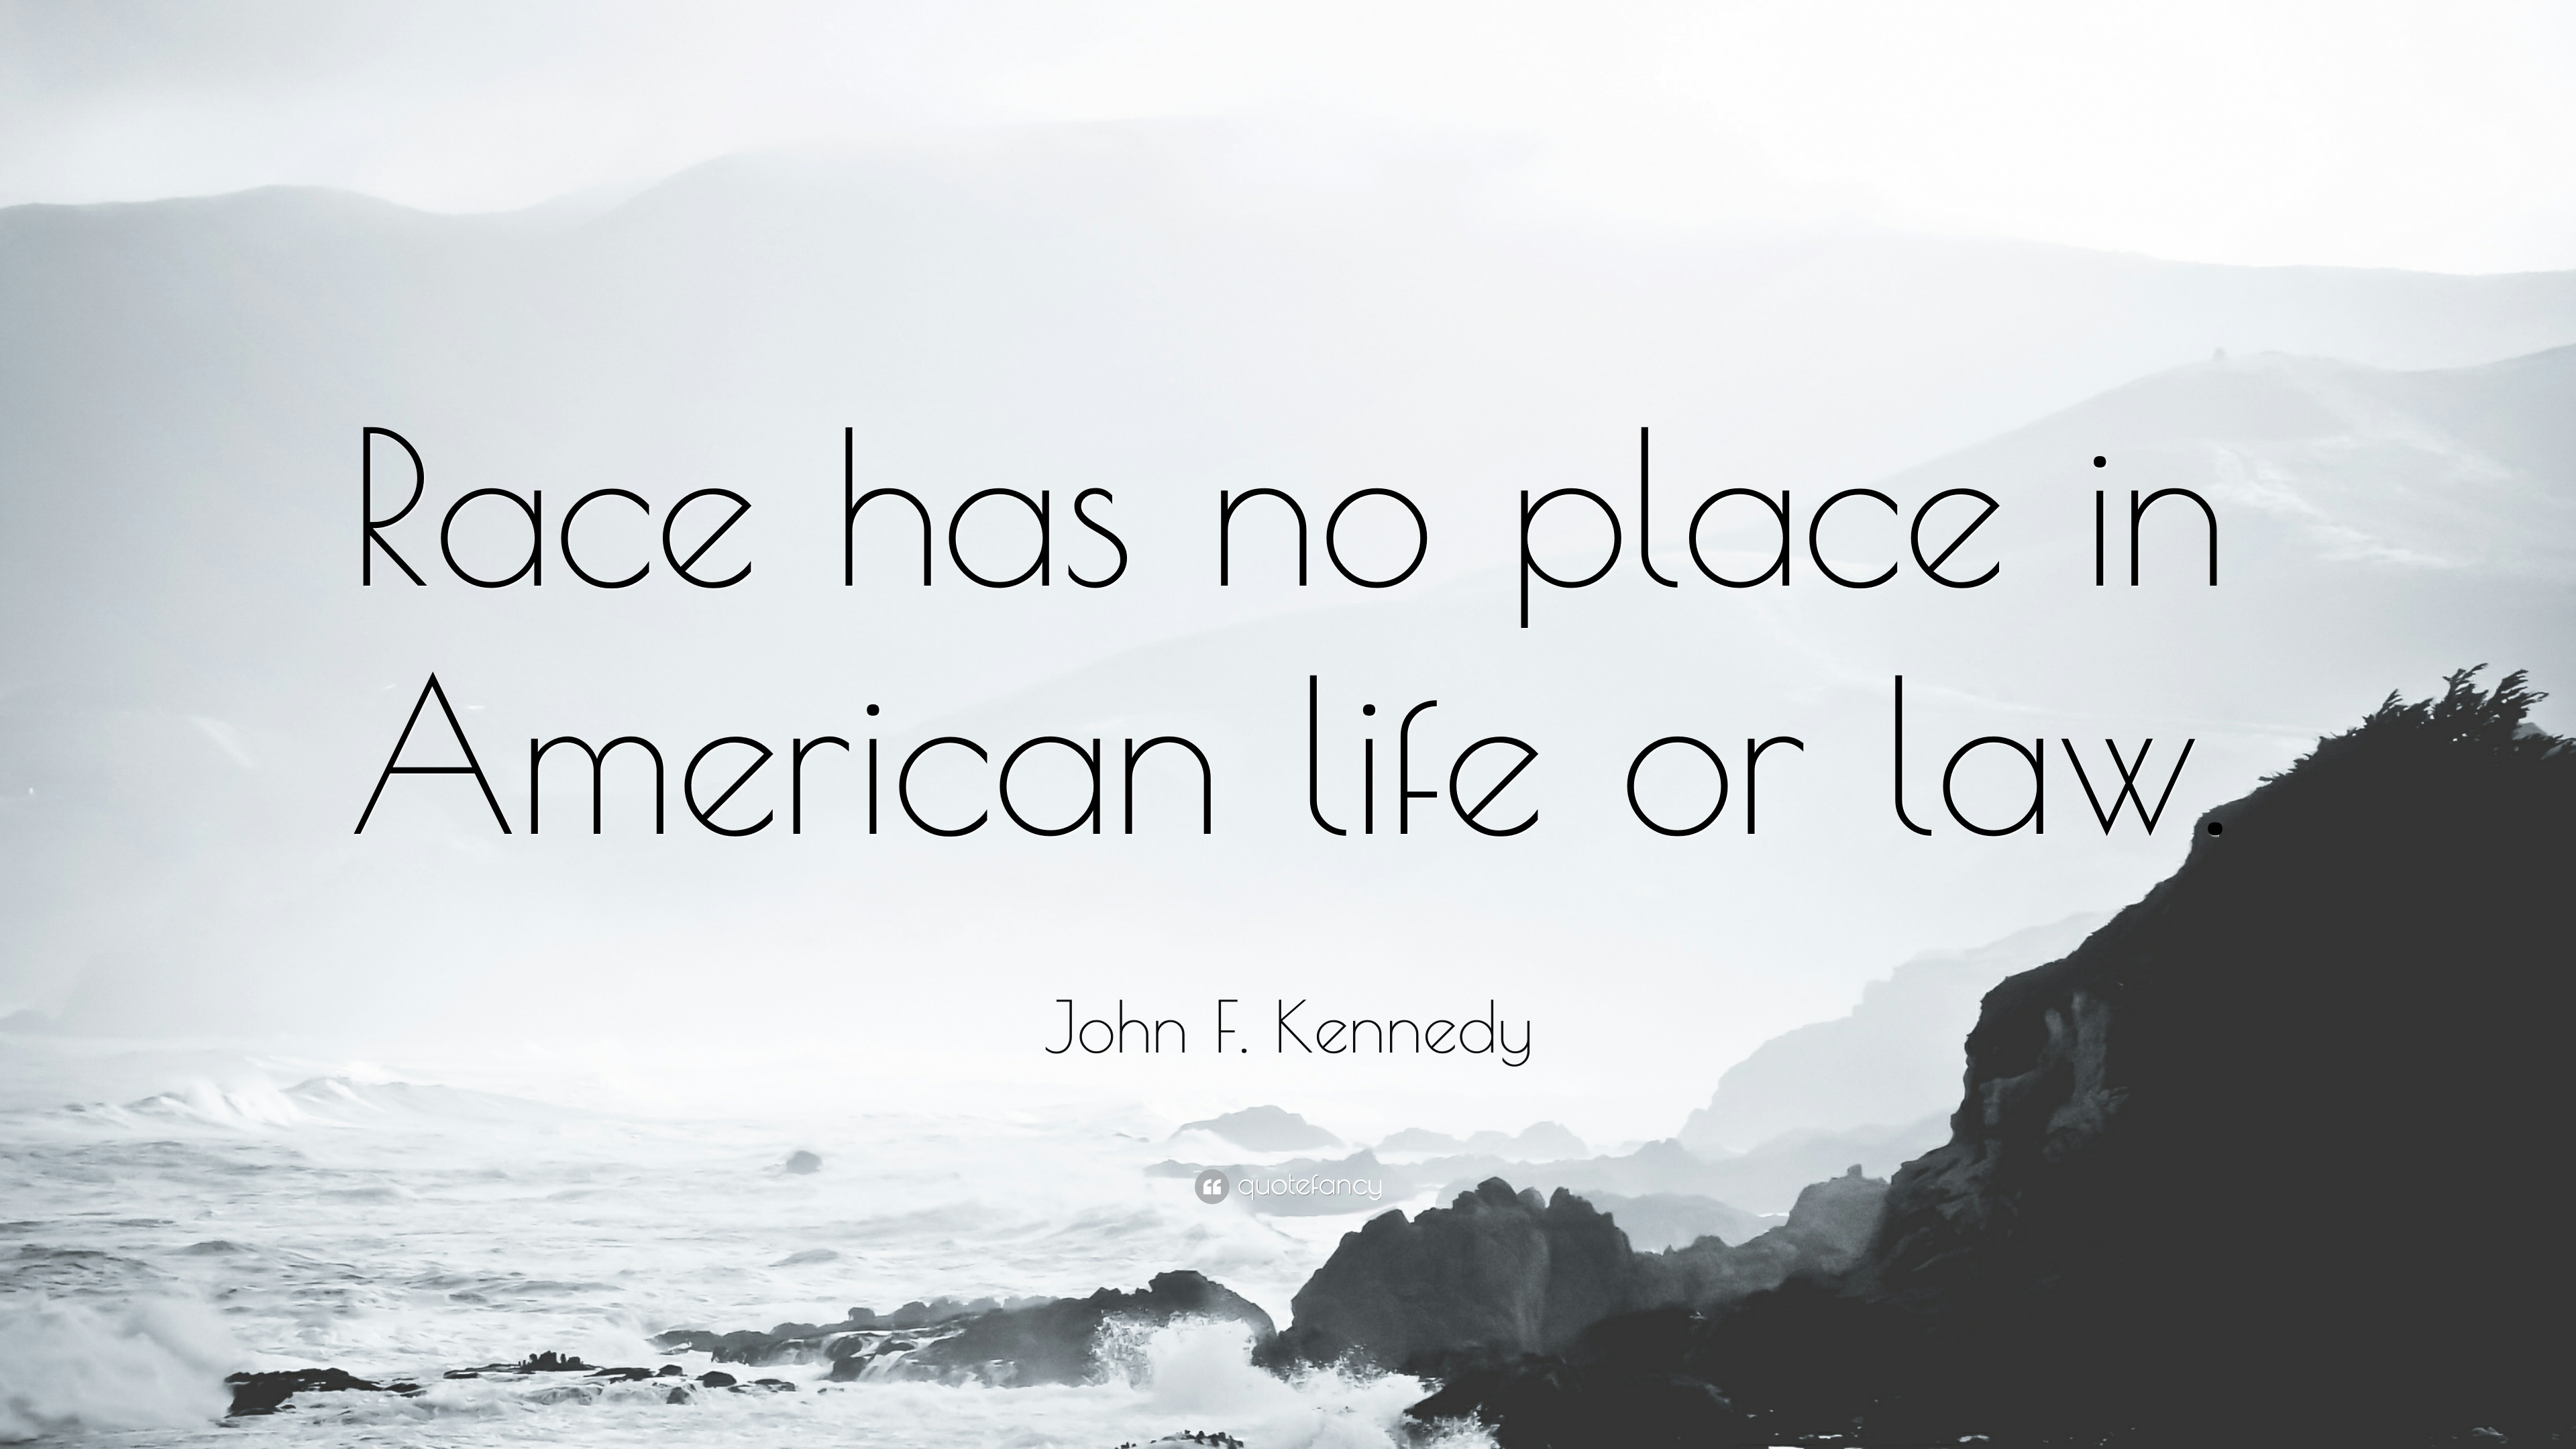 John F Kennedy Quote Race Has No Place In American Life Or Law